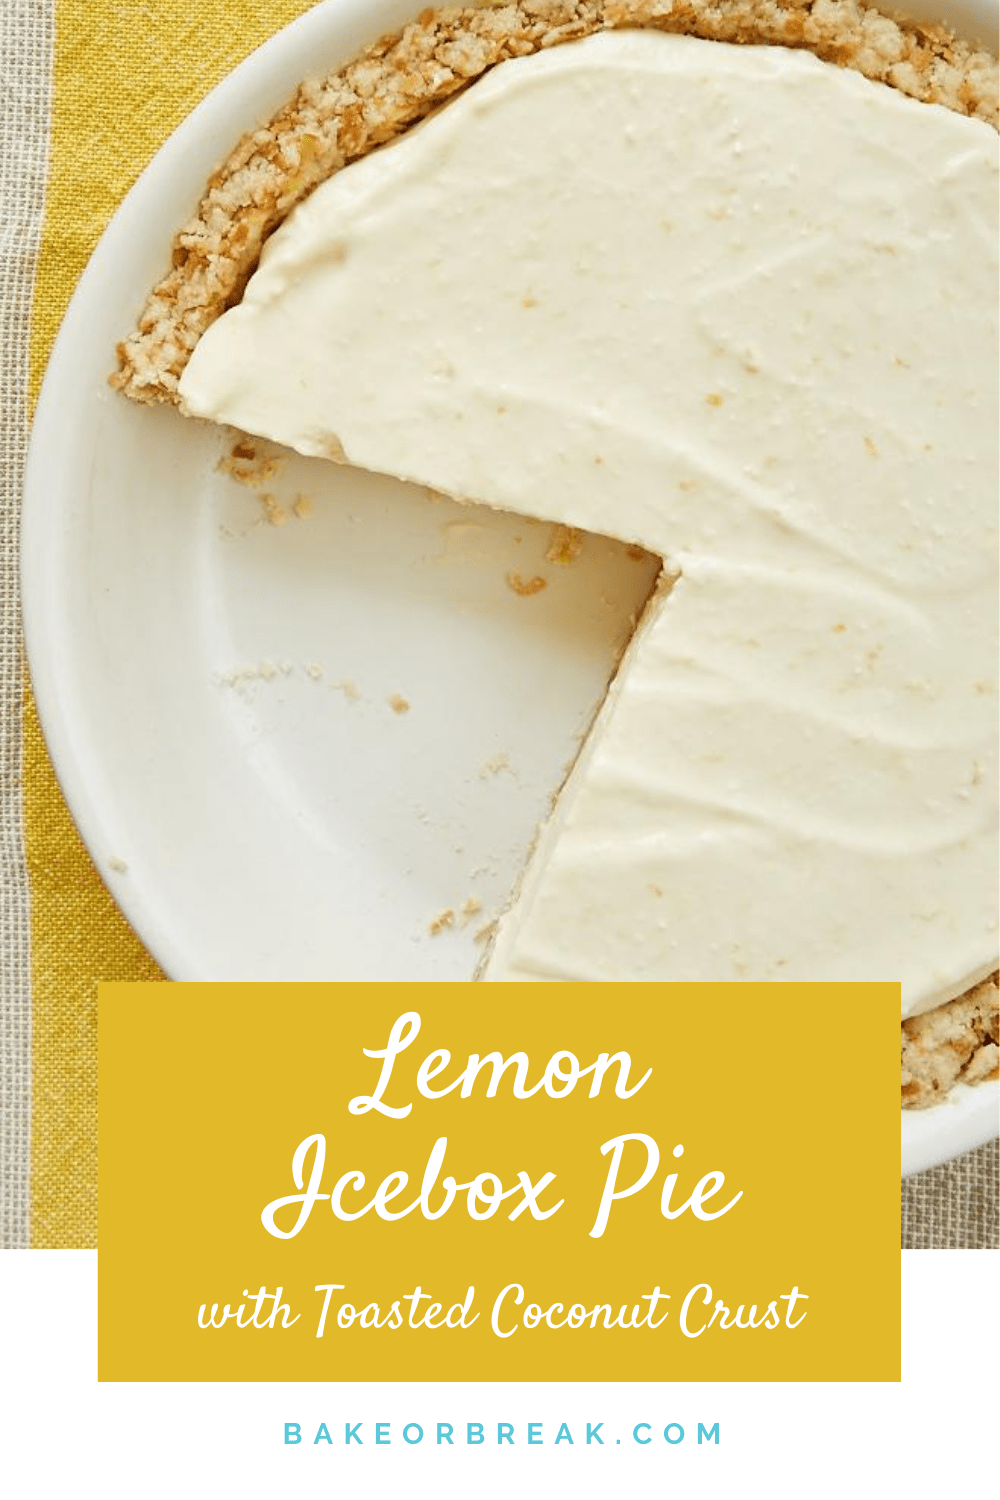 Lemon Icebox Pie with Toasted Coconut Crust bakeorbreak.com